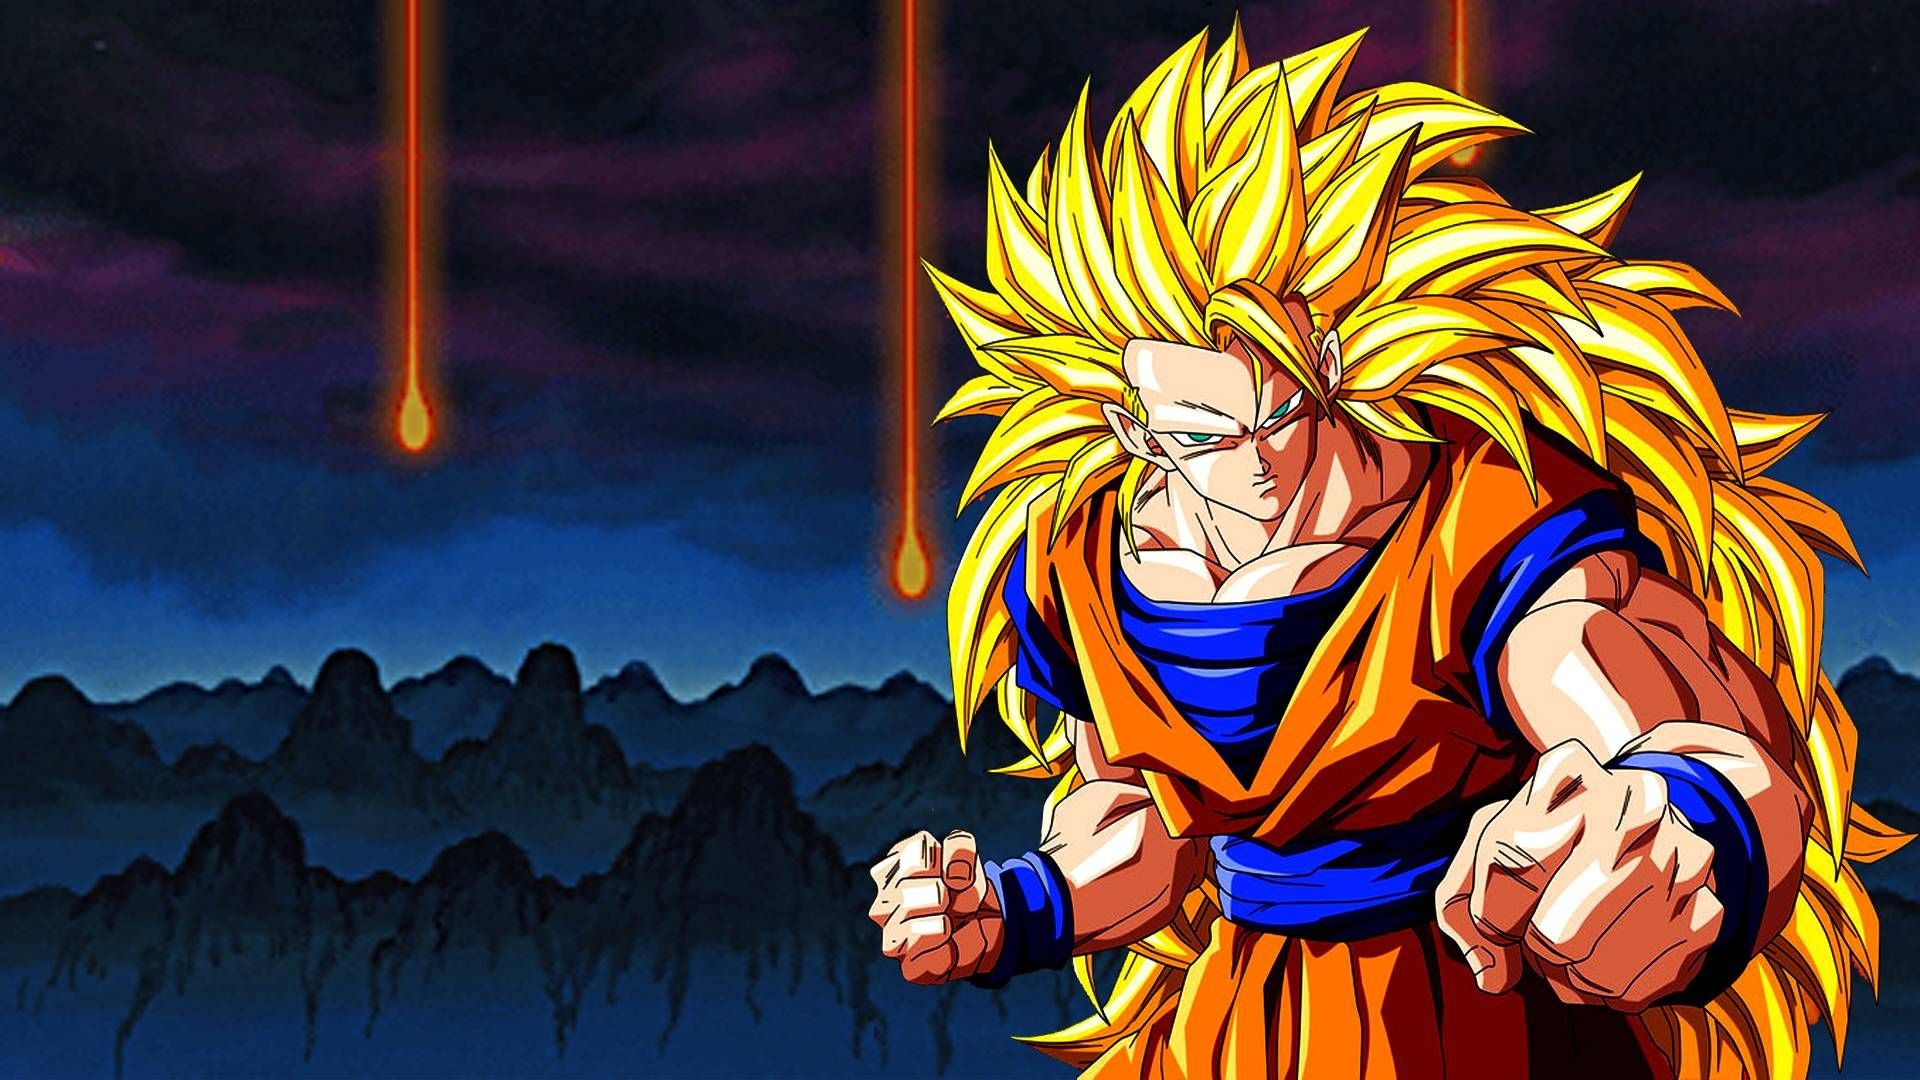 1920x1080 Dragon Ball Z Goku Wallpaper Full HD